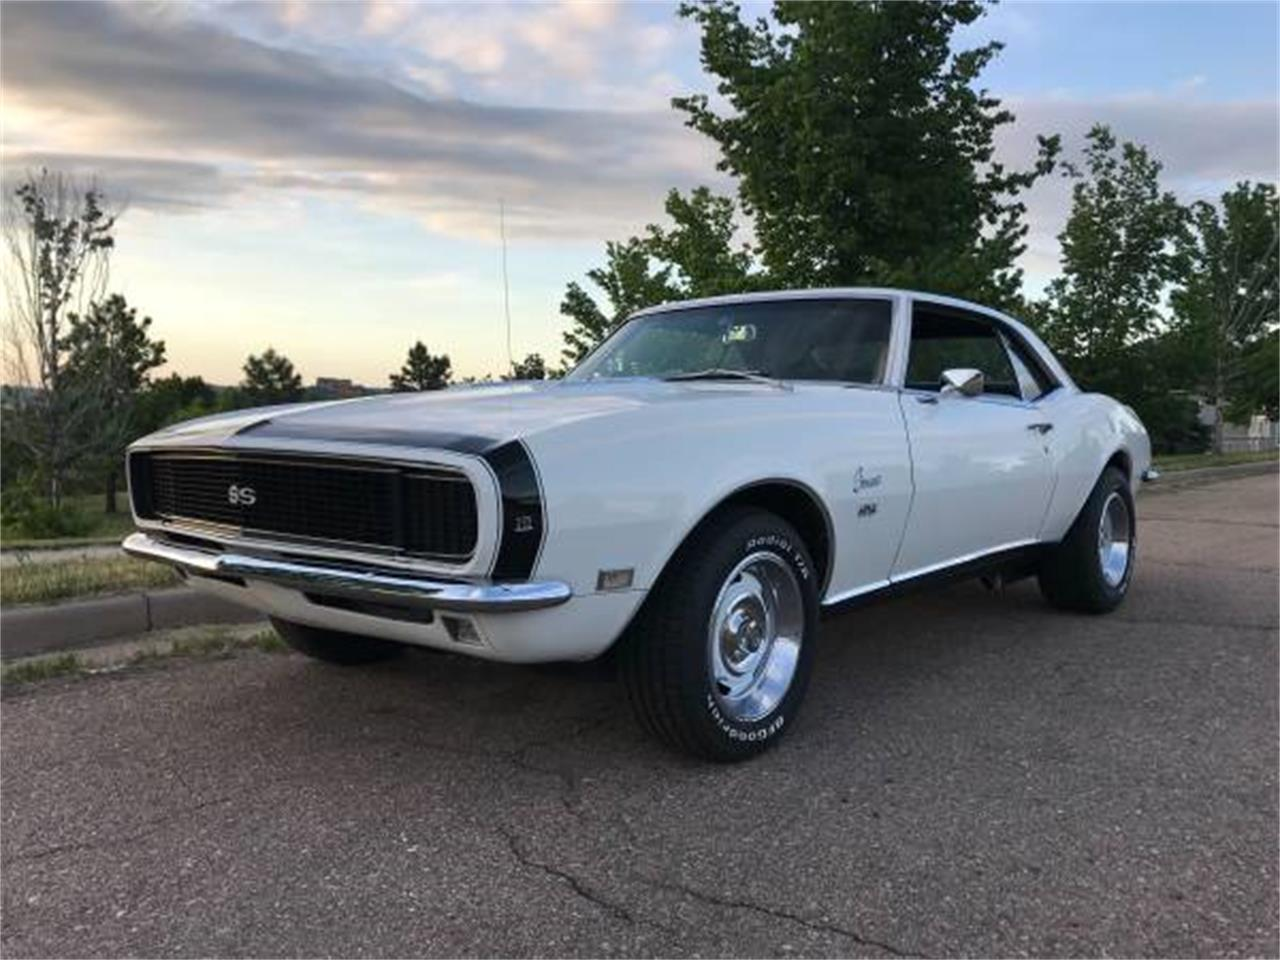 Large Picture of '68 Camaro located in Castle Rock Colorado - $39,000.00 Offered by a Private Seller - QDF6